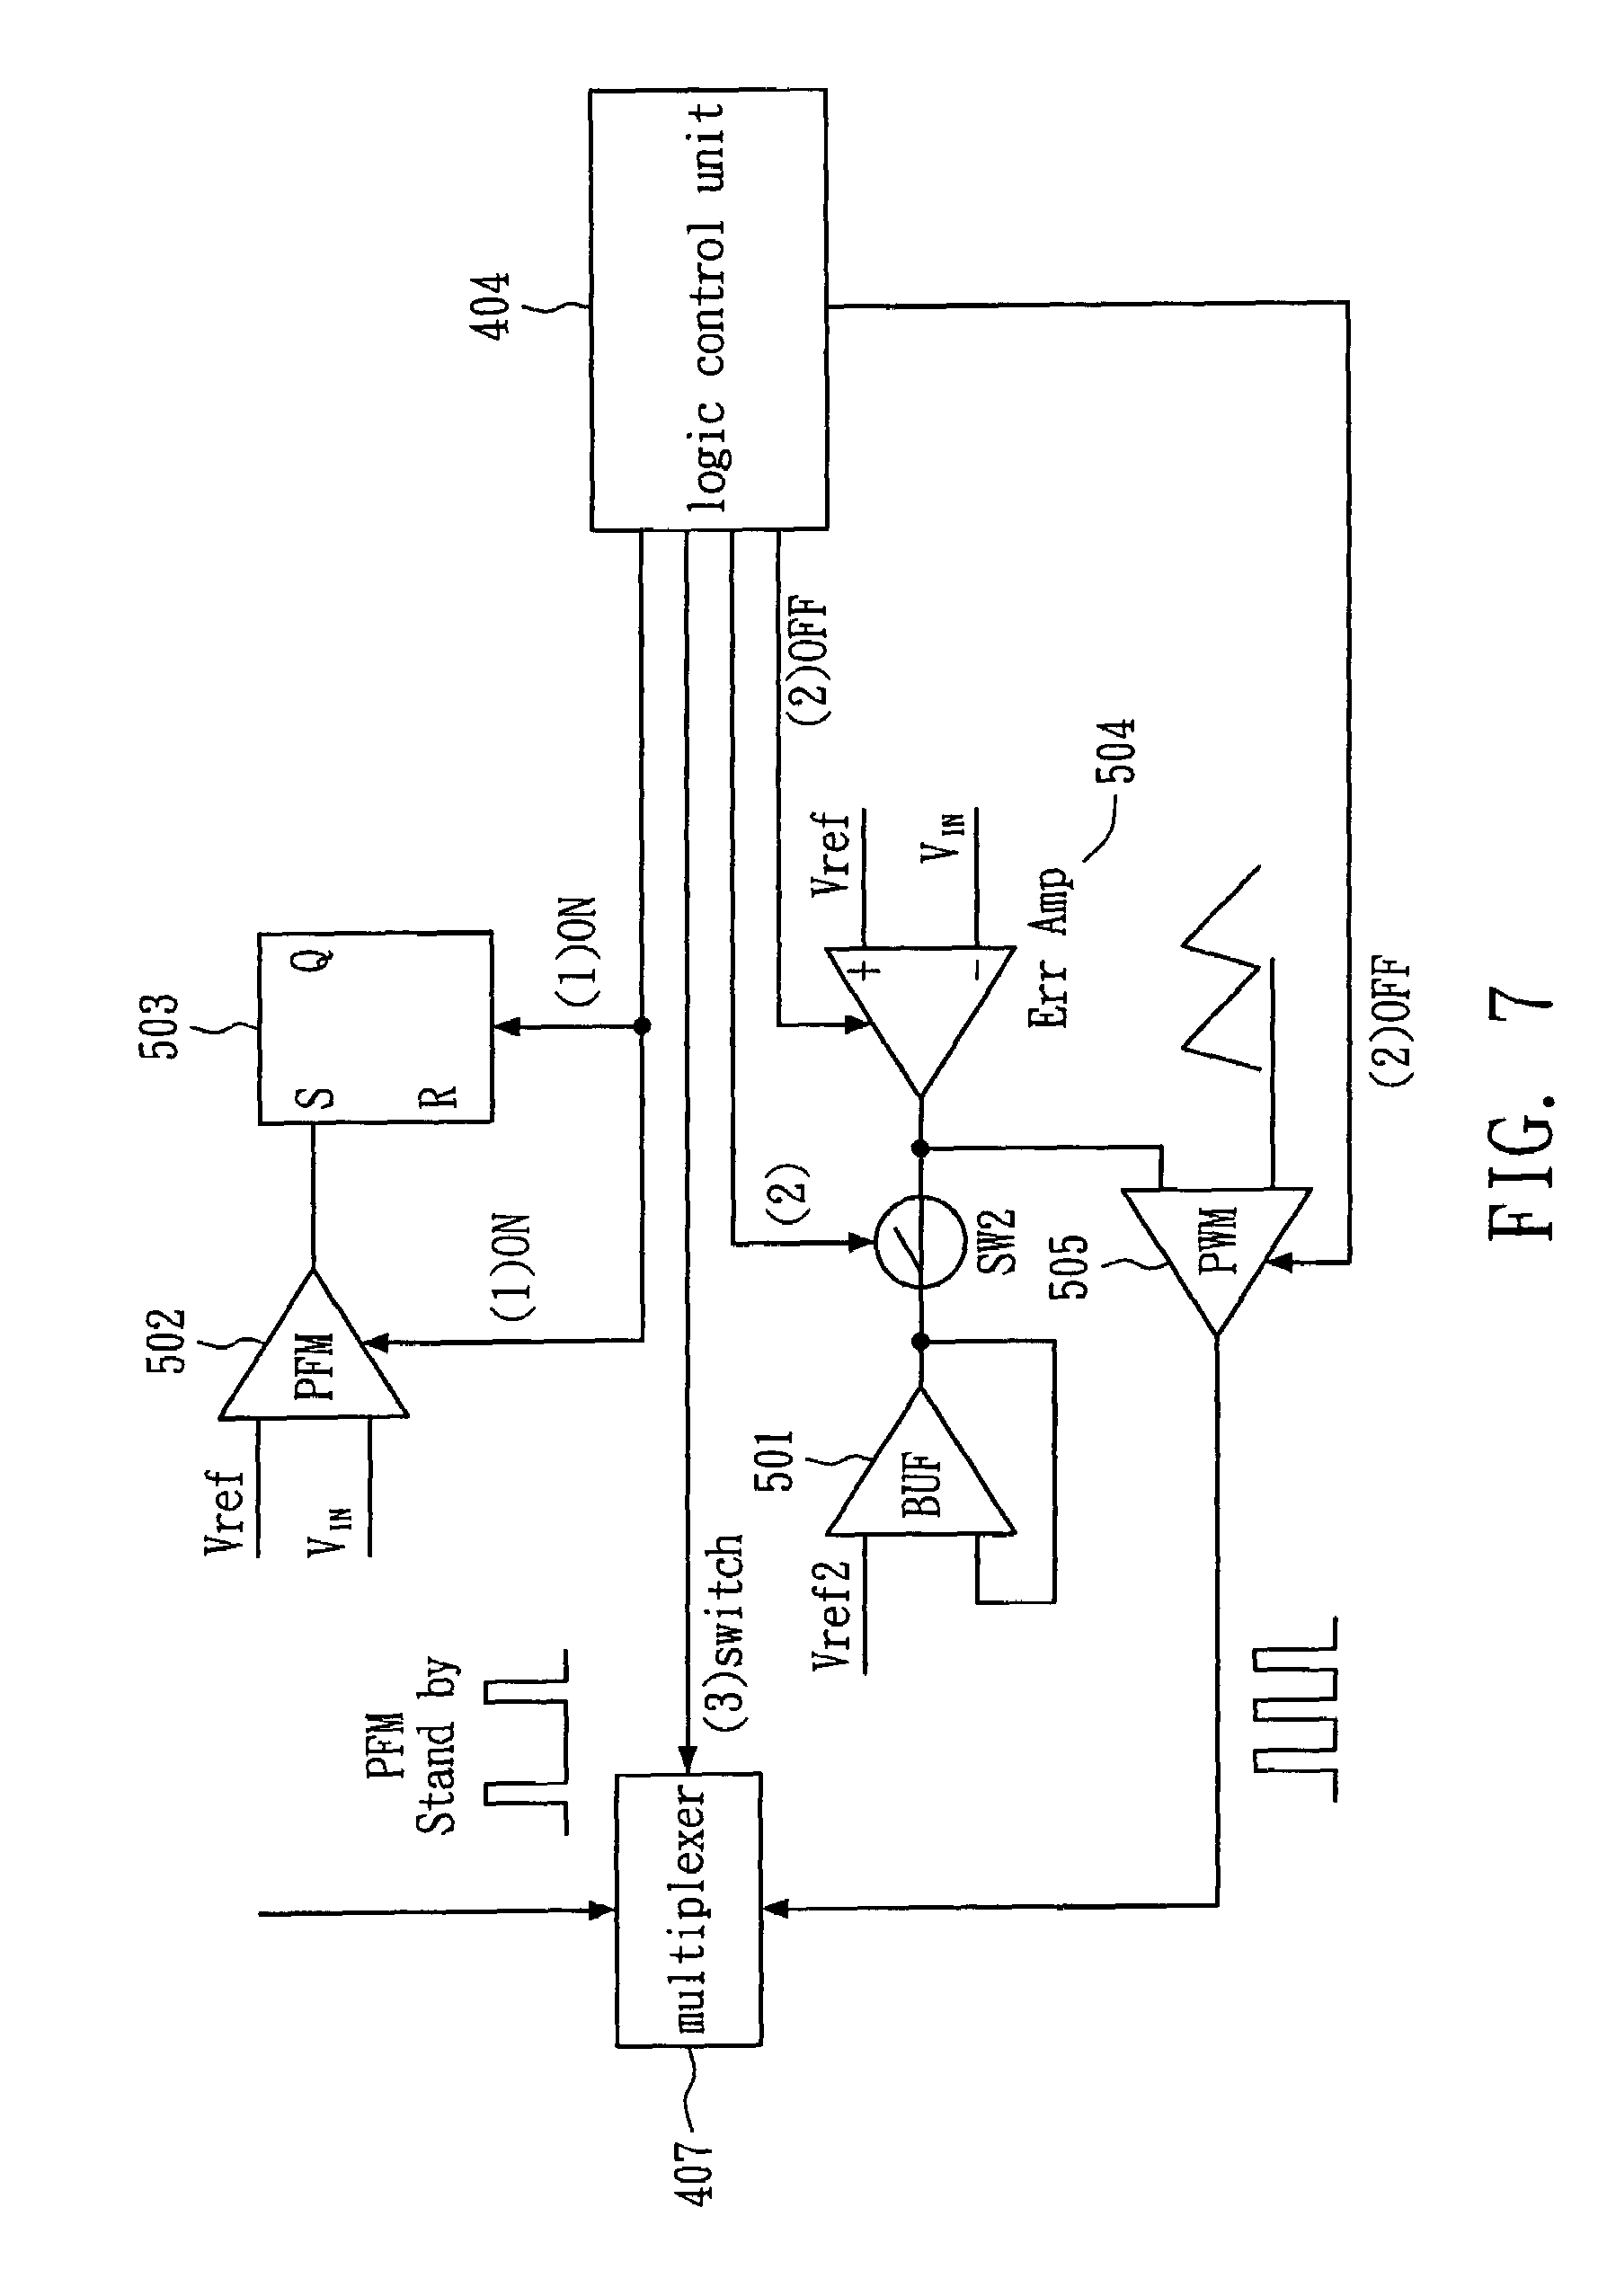 patent us7446621 - circuit and method for switching pfm and pwm